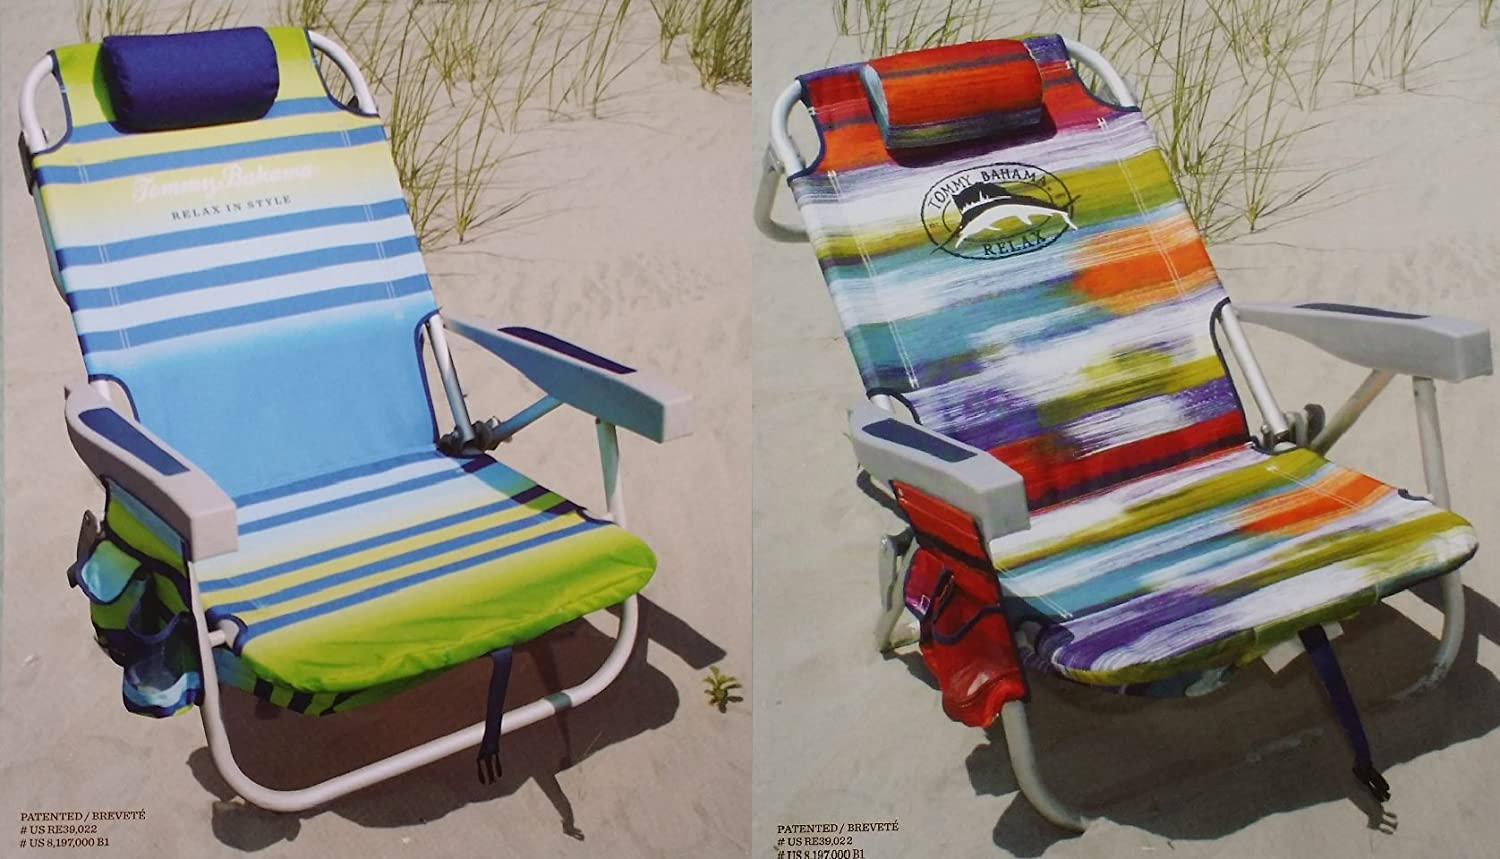 Tommy Bahama 2 2015 Backpack Cooler Chairs with Storage Pouch and Towel Bar 1 Green Striped and 1 Multicolor